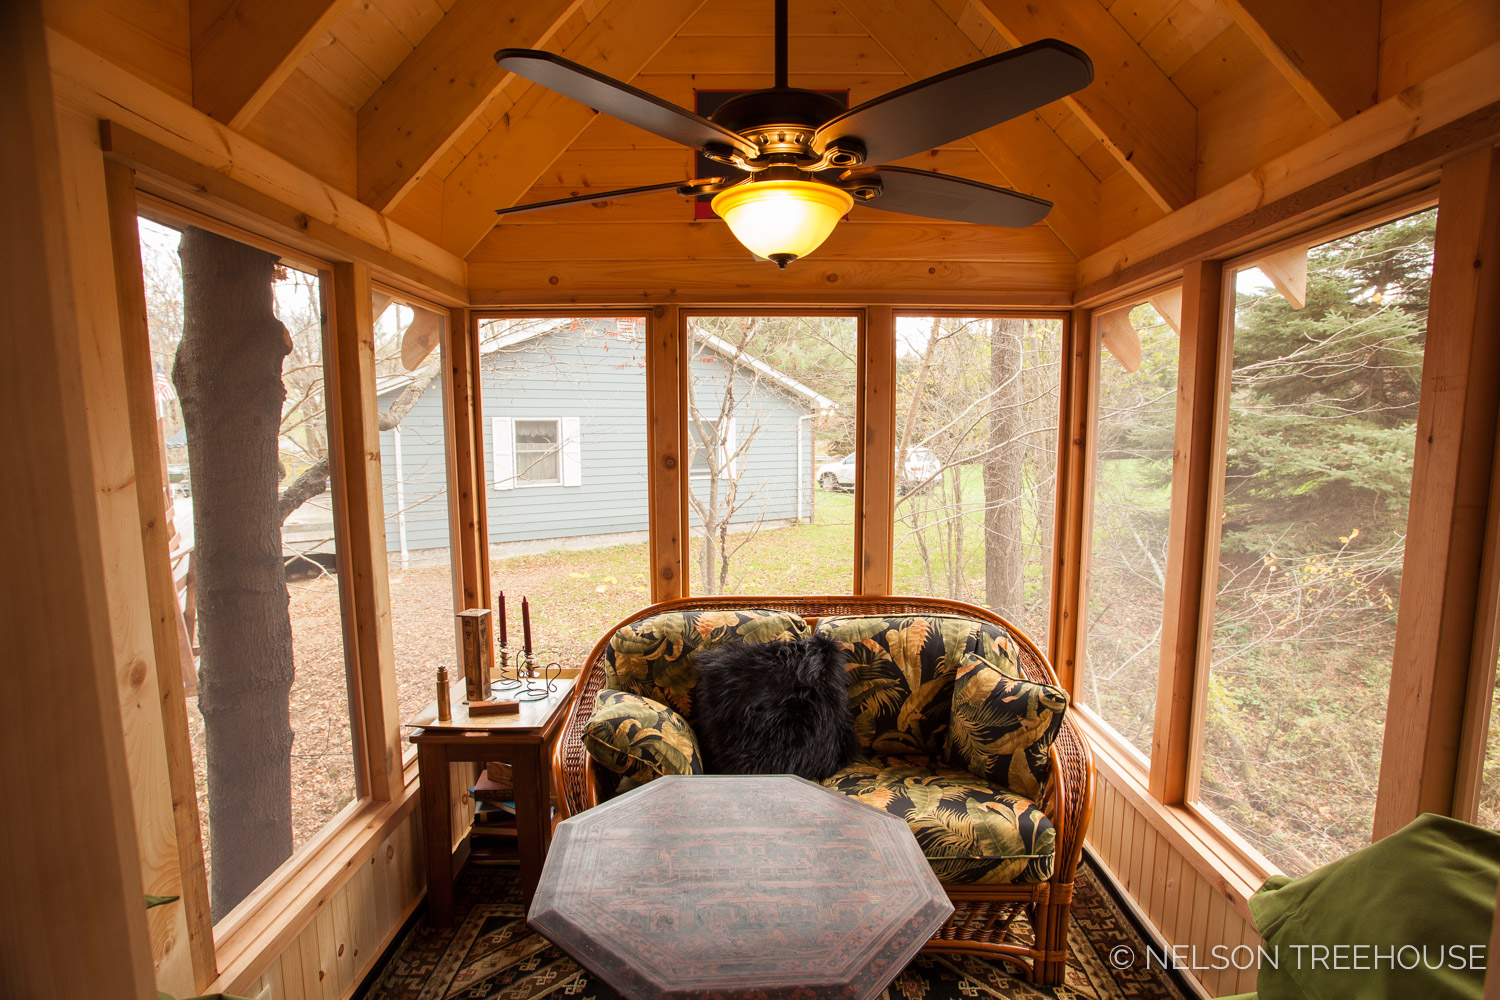 Nelson Treehouse - Adventure TEmple Screened-in Porch